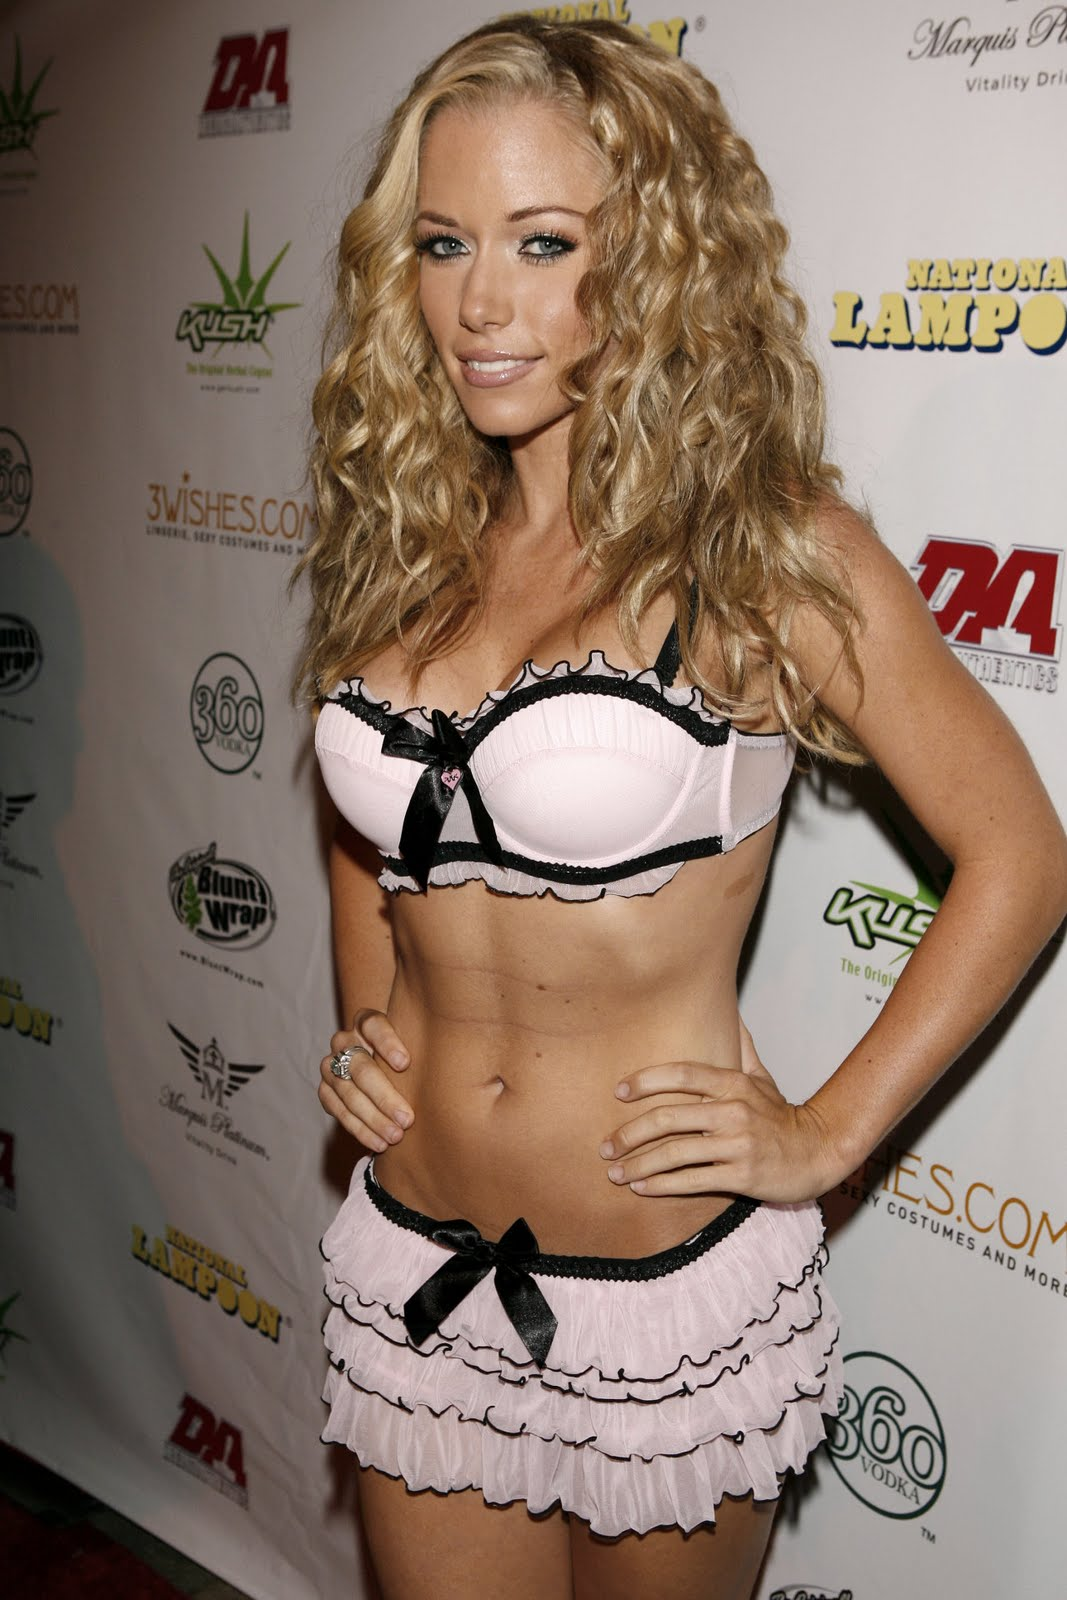 Kendra Wilkinson Sexy Pics, Hot Kendra Wilkinson Photo Gallery